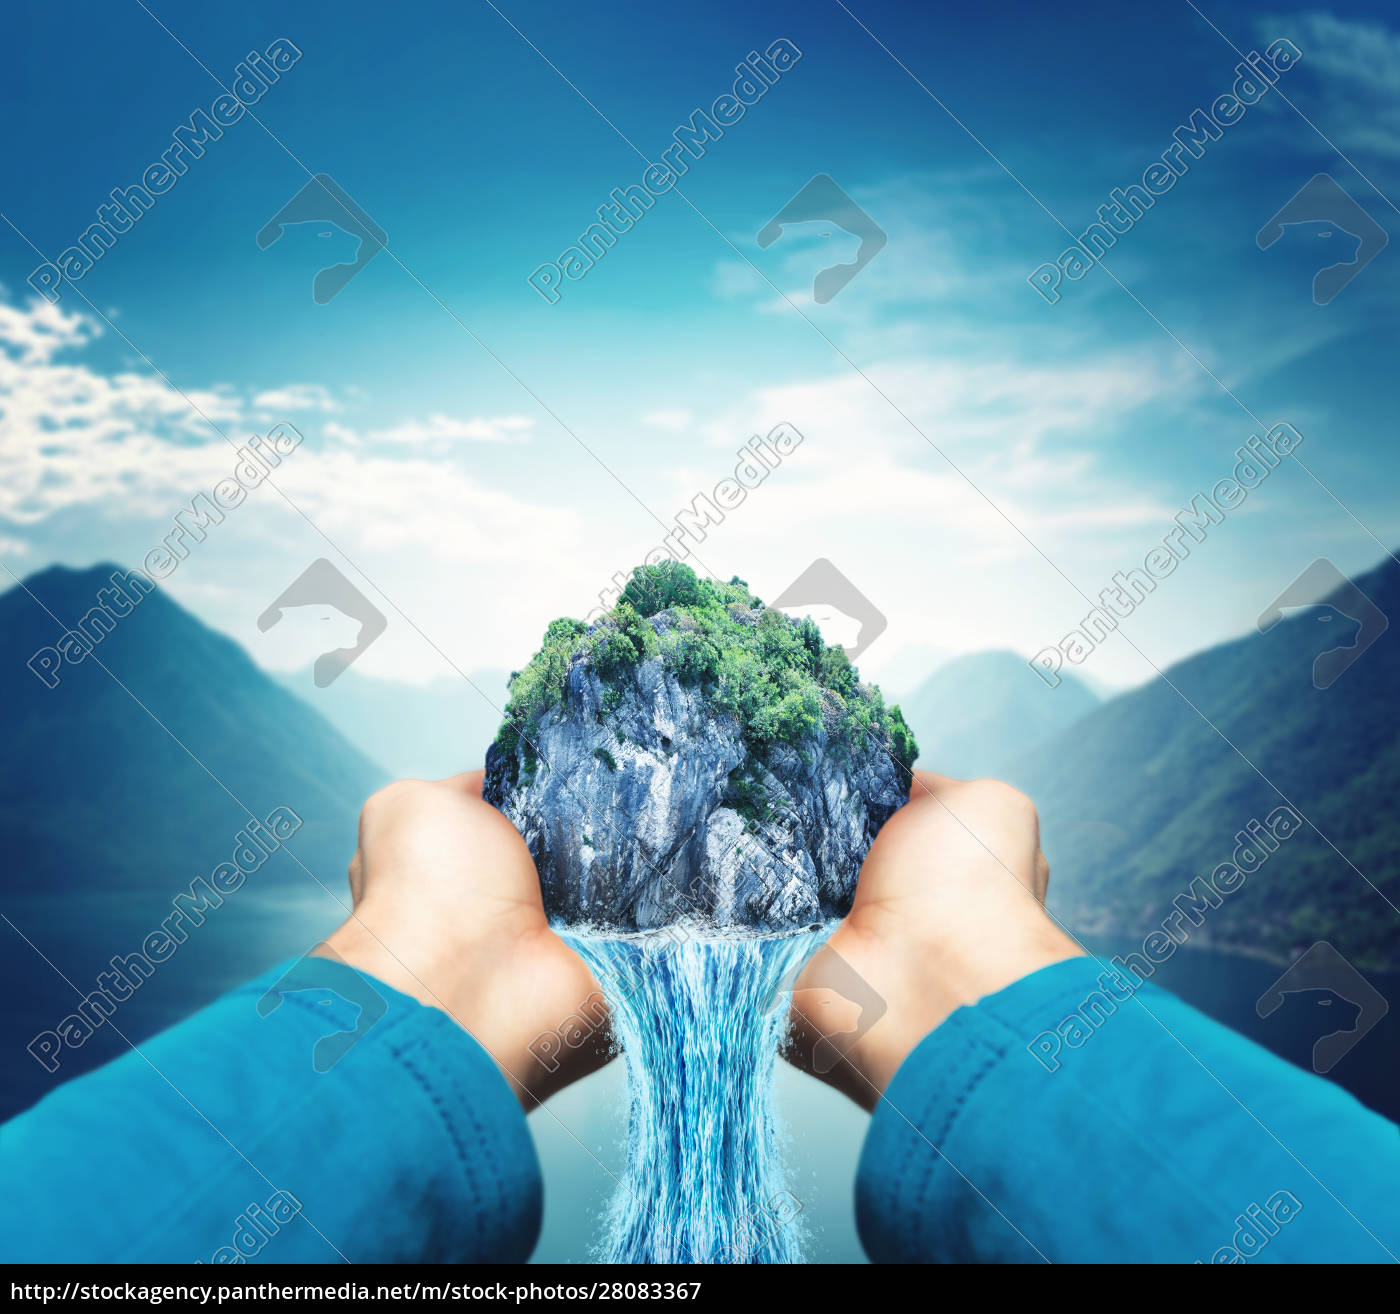 male, hands, with, waterfall - 28083367